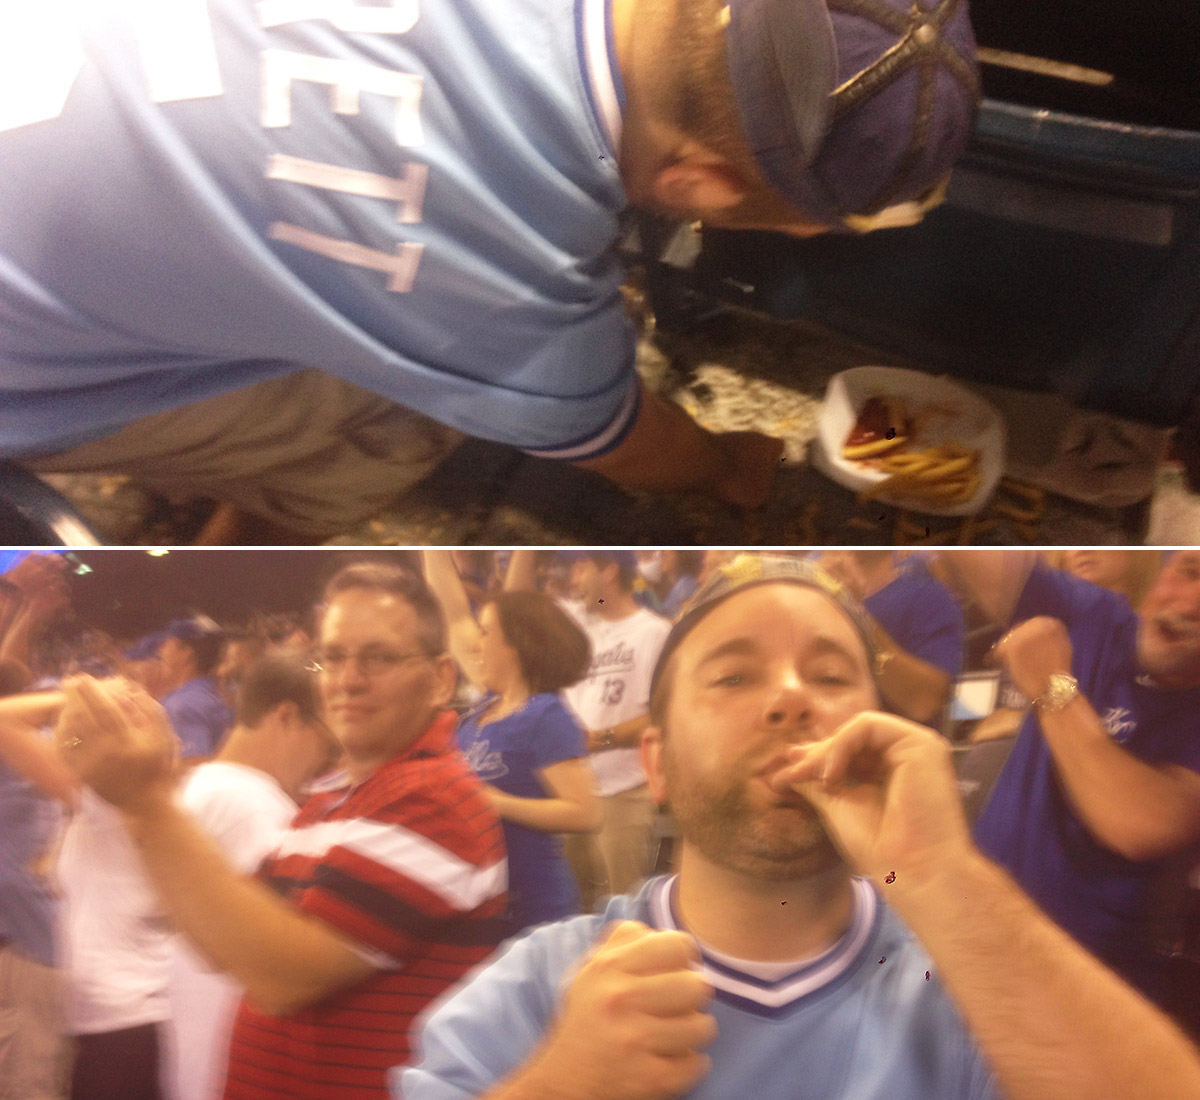 The aforementioned peanut-eating Royals fan gladly accepts his punishment. Rany Jazayerli/Grantland